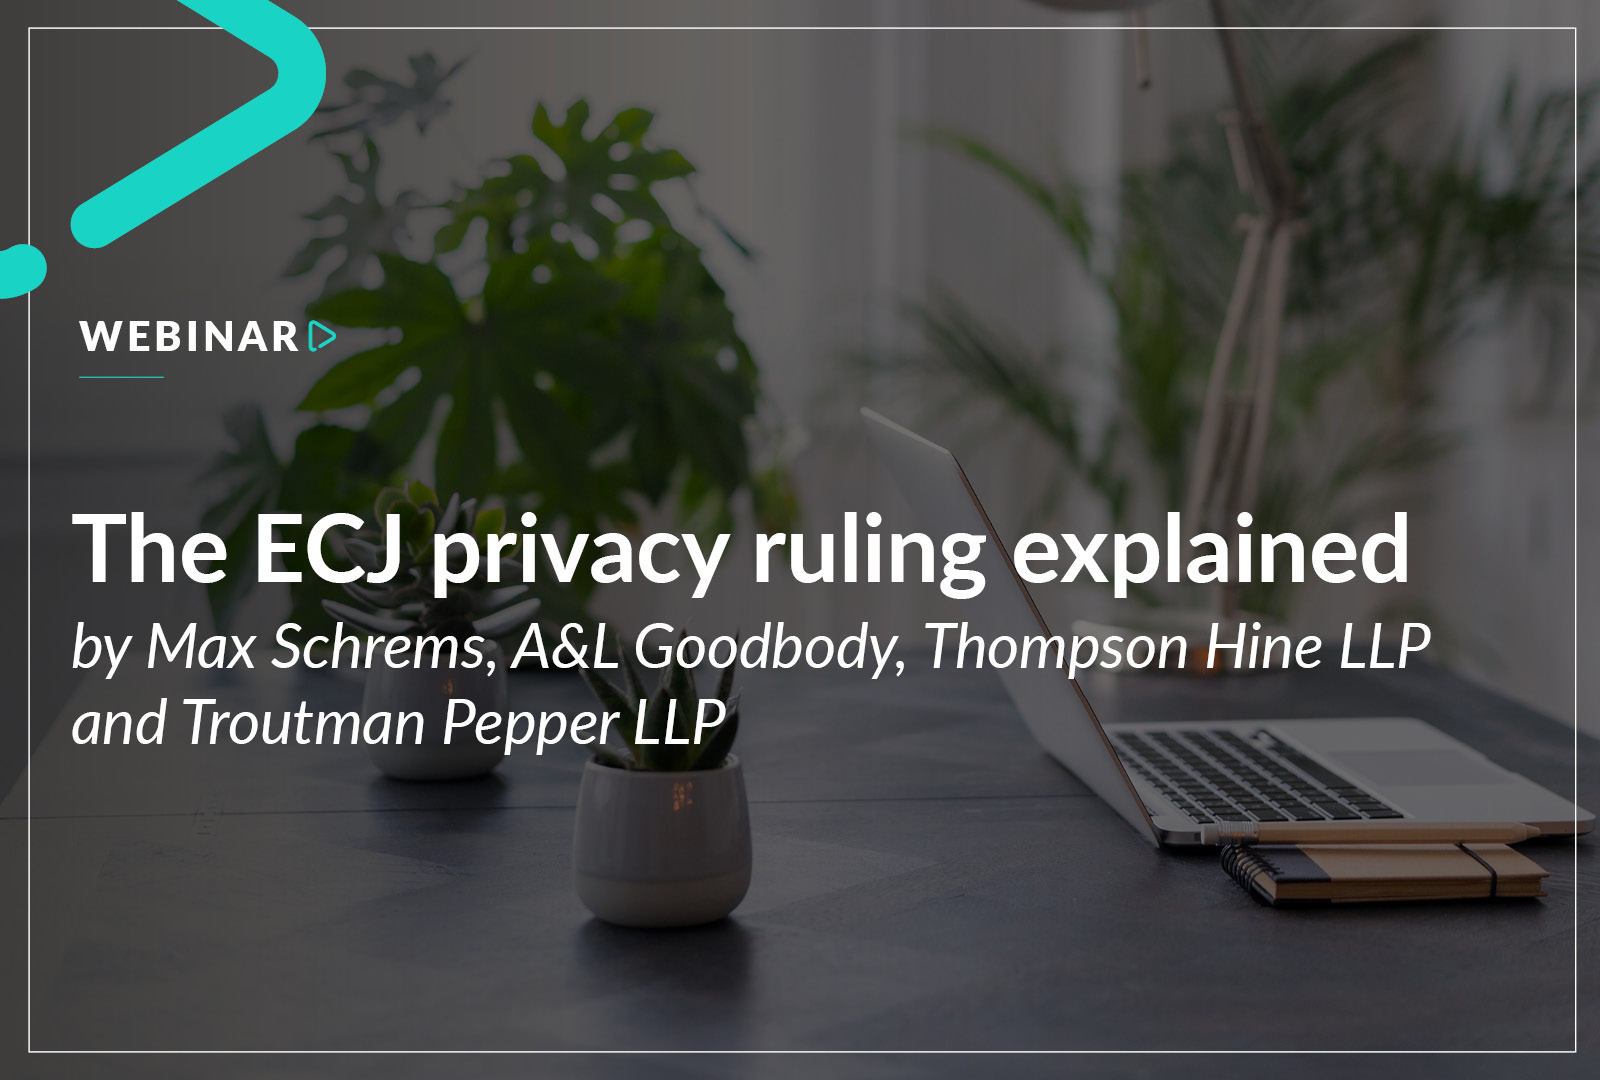 The ECJ privacy ruling explained